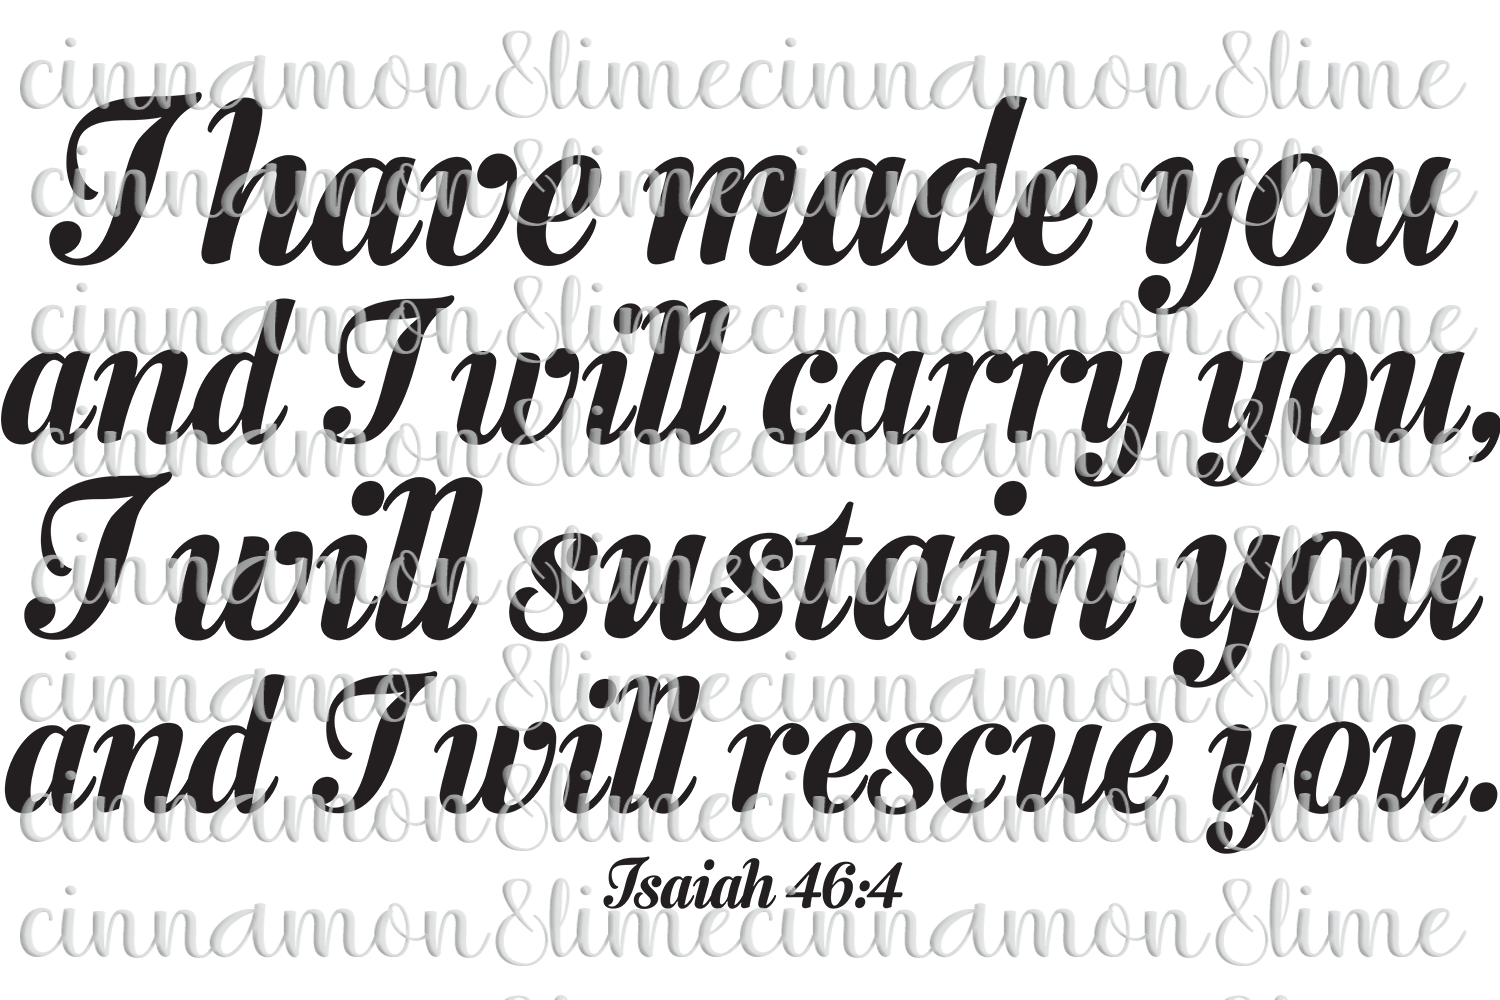 I Have Made You and I Will Carry You Christian SVG example image 1